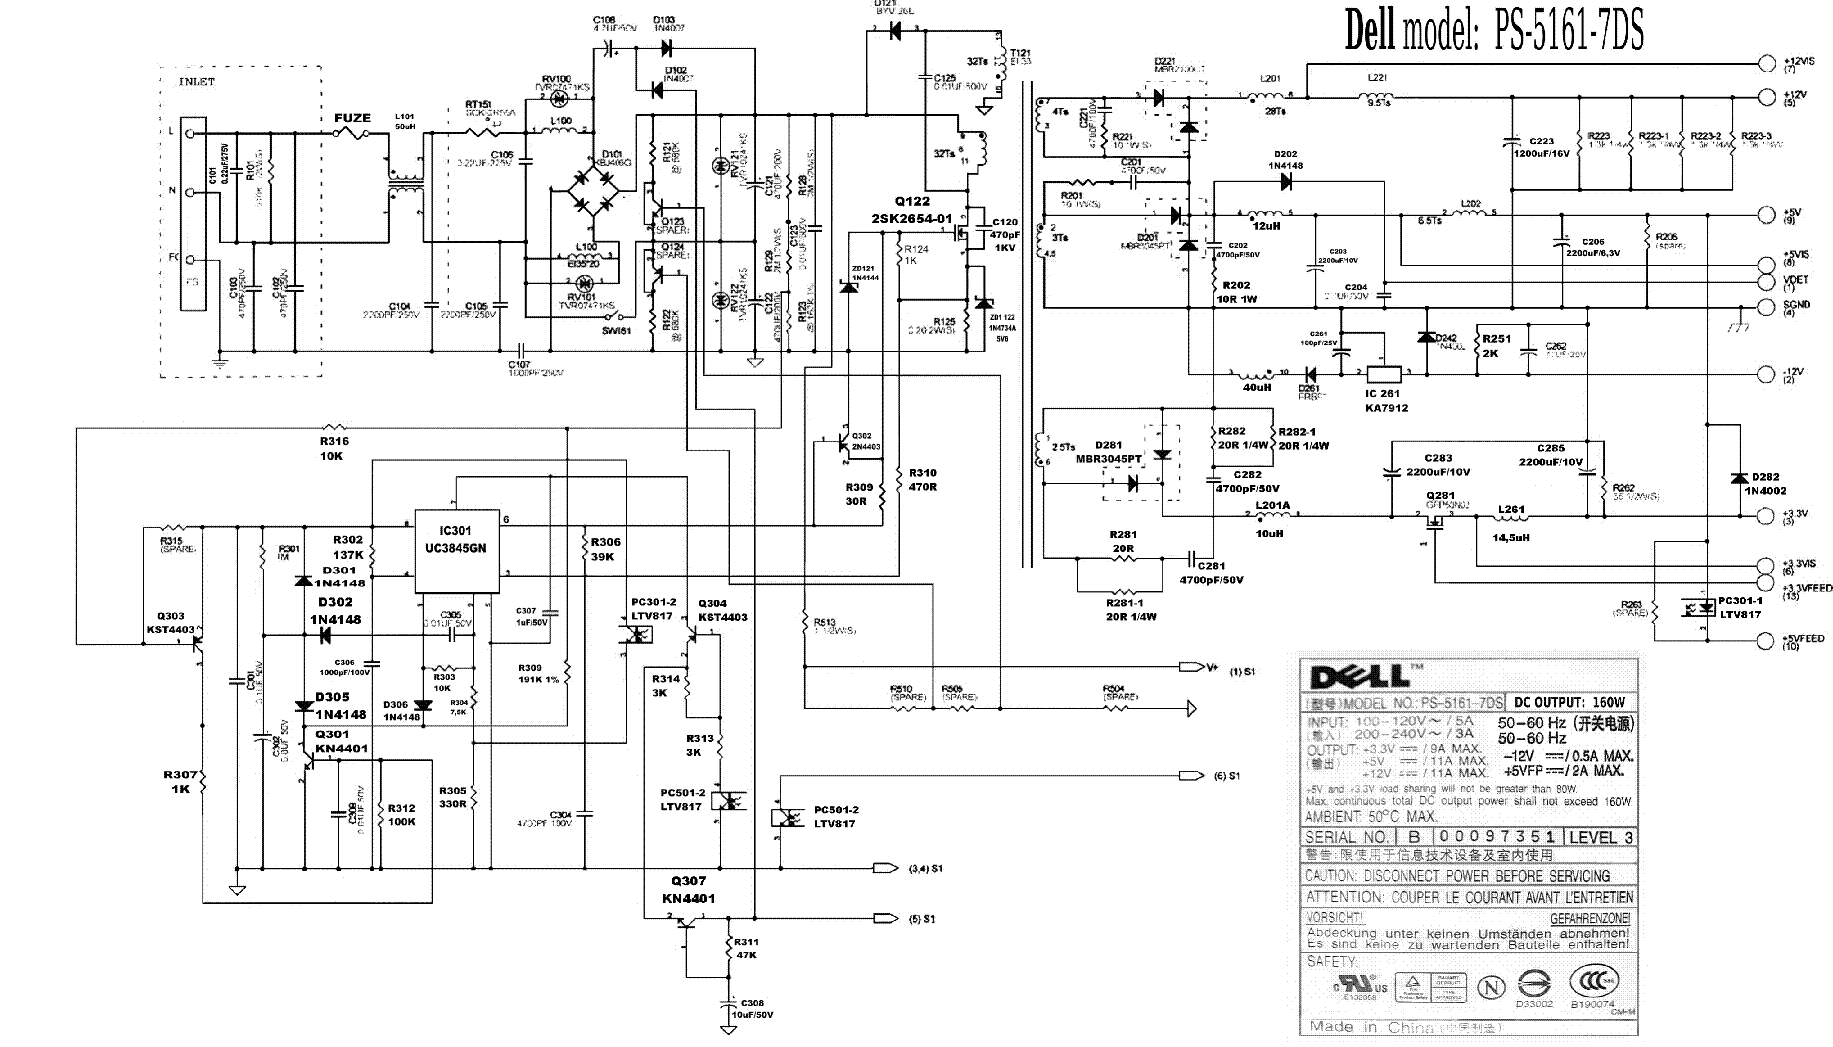 dell laptop power supply schematic  | powersupplypeinpa.blogspot.com